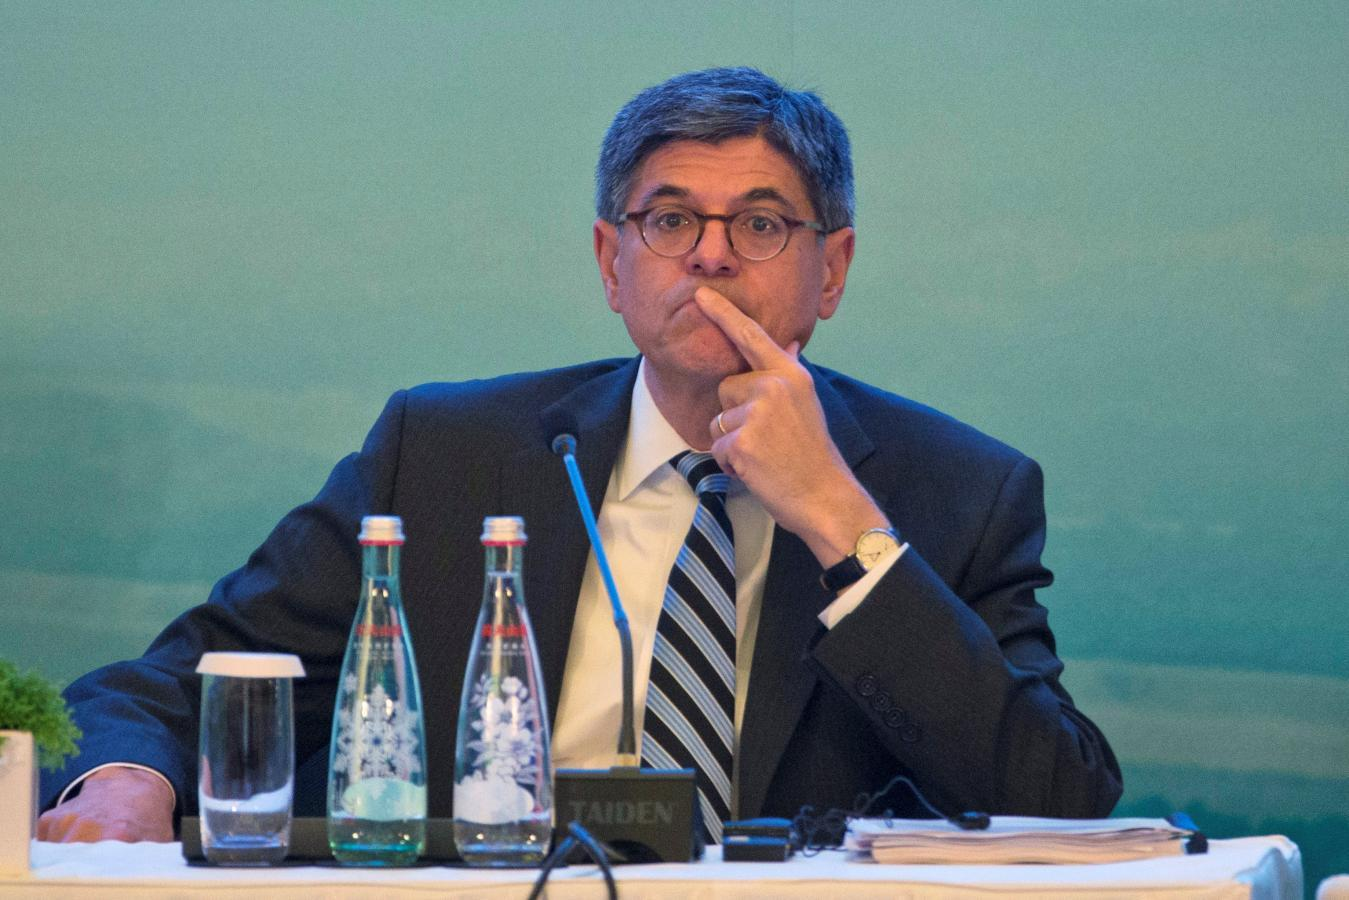 Commitment to refrain from competitive FX devaluations has sustained confidence: Treasury's Lew